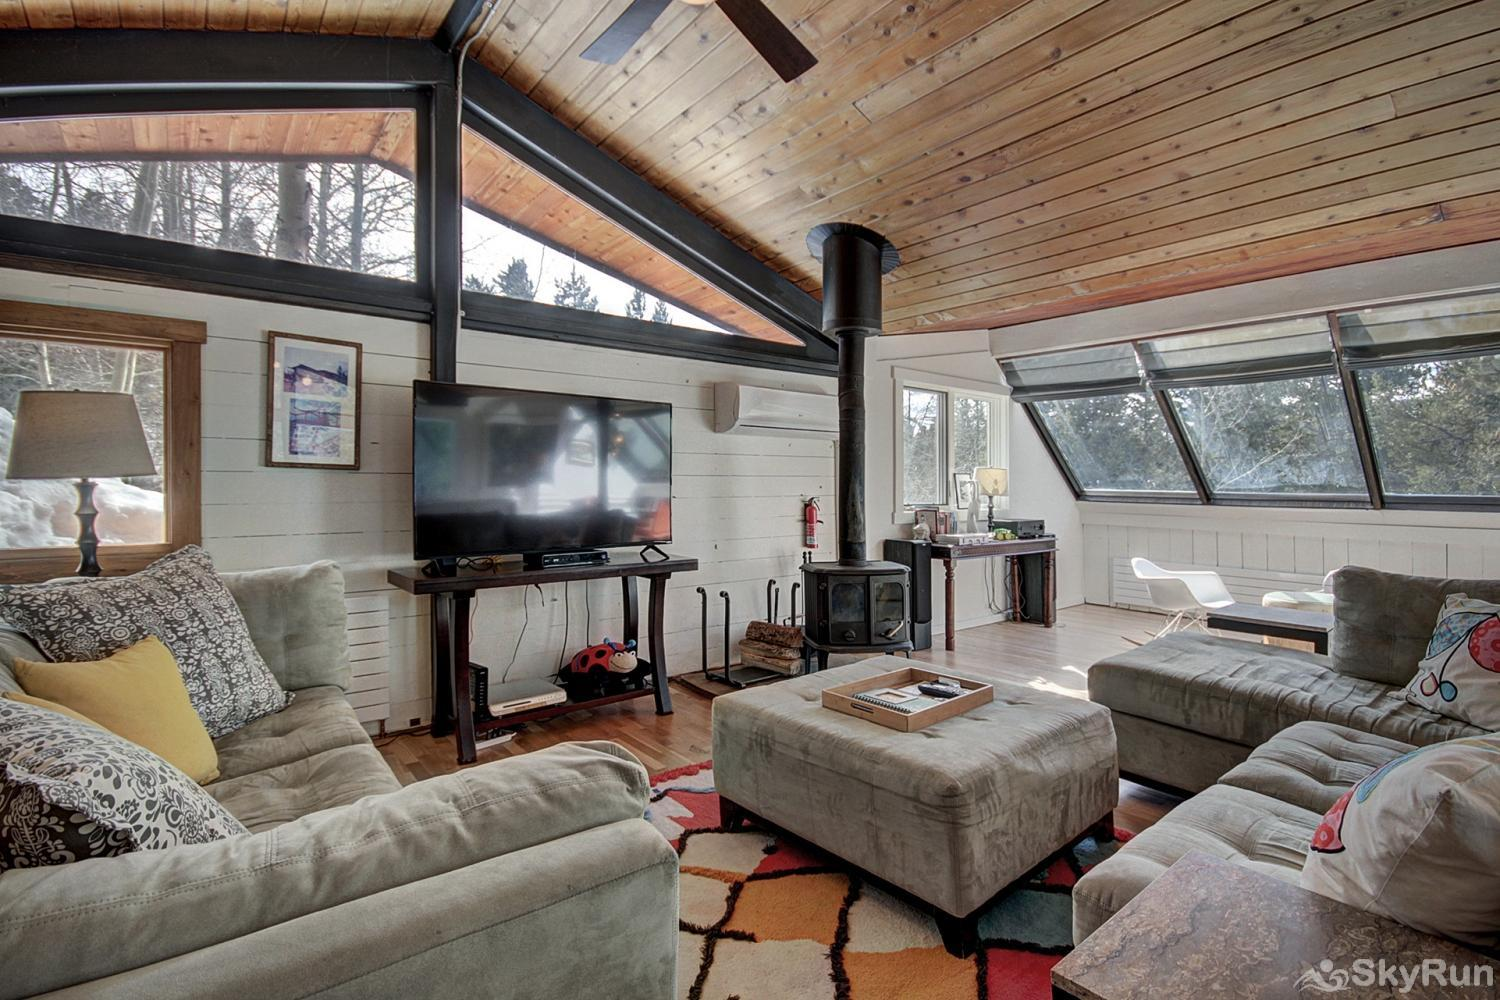 Elk Horn Cabin Stay cozy warm by the wood burning fireplace on those cold winter nights